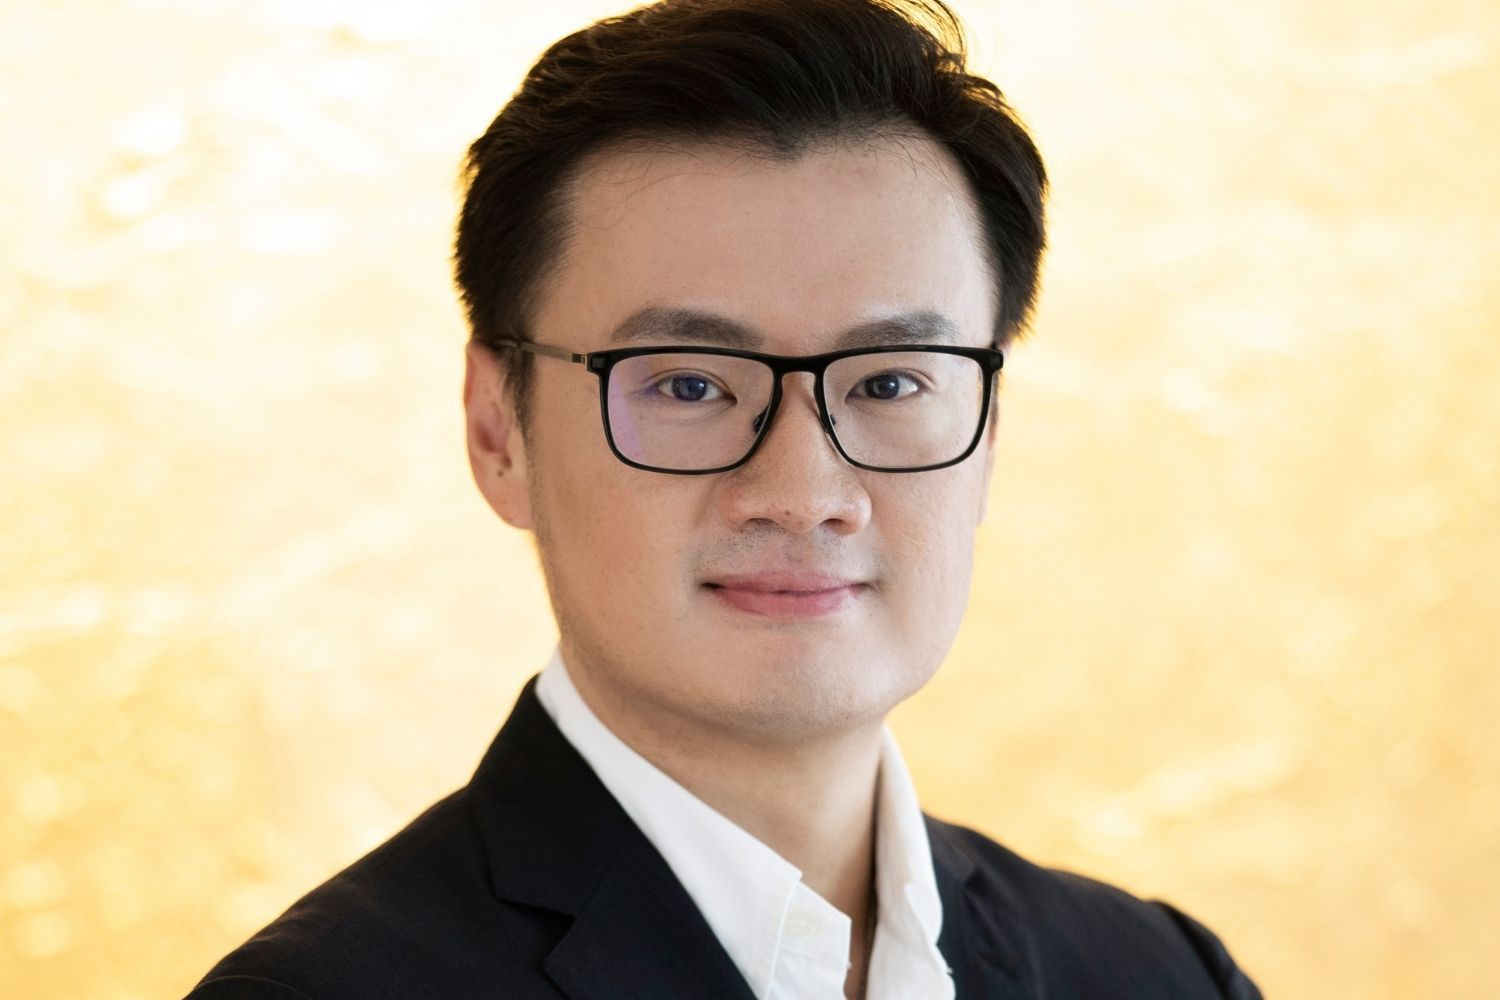 4 Things To Know About Investing In Gold Art, According To Michael Teh Of Aureo Gallery